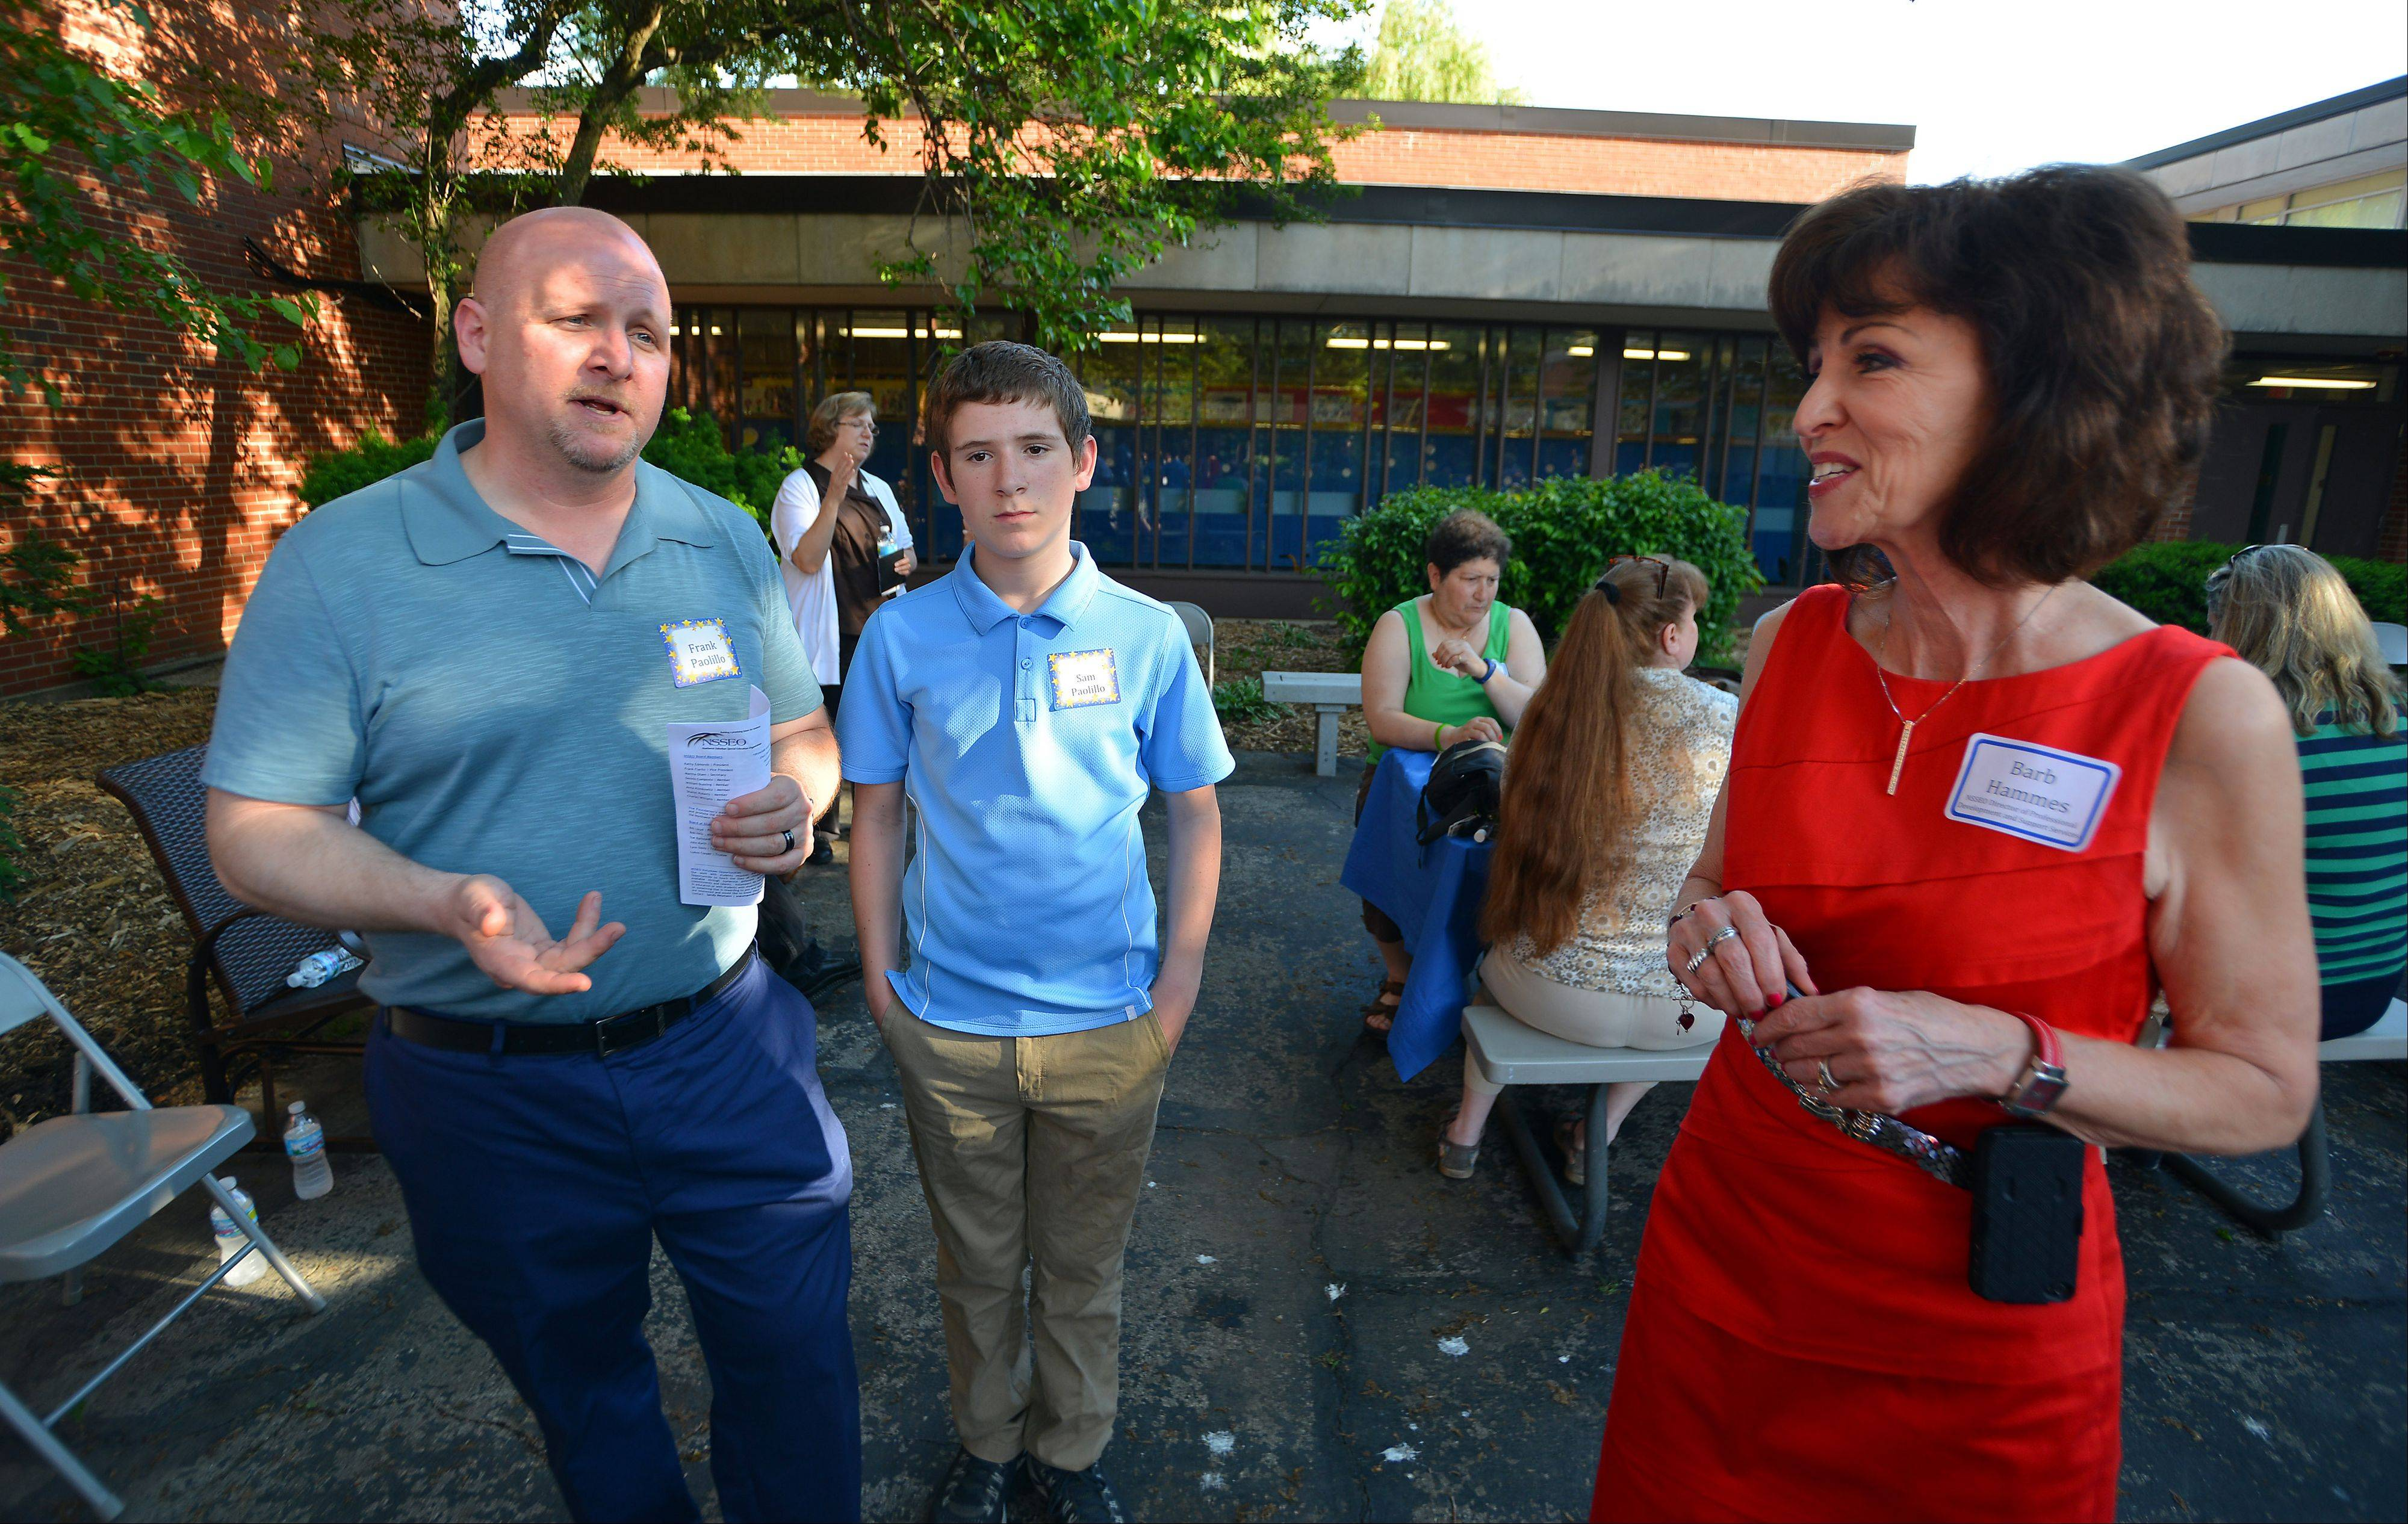 Barb Hammes, NSSEO director of professional development and support service, talks with Frank Paolillo and his son Sam, 13, of Park Ridge, who donated 20 iPads to Timberland School with Magellan Corp. in Deerfield.